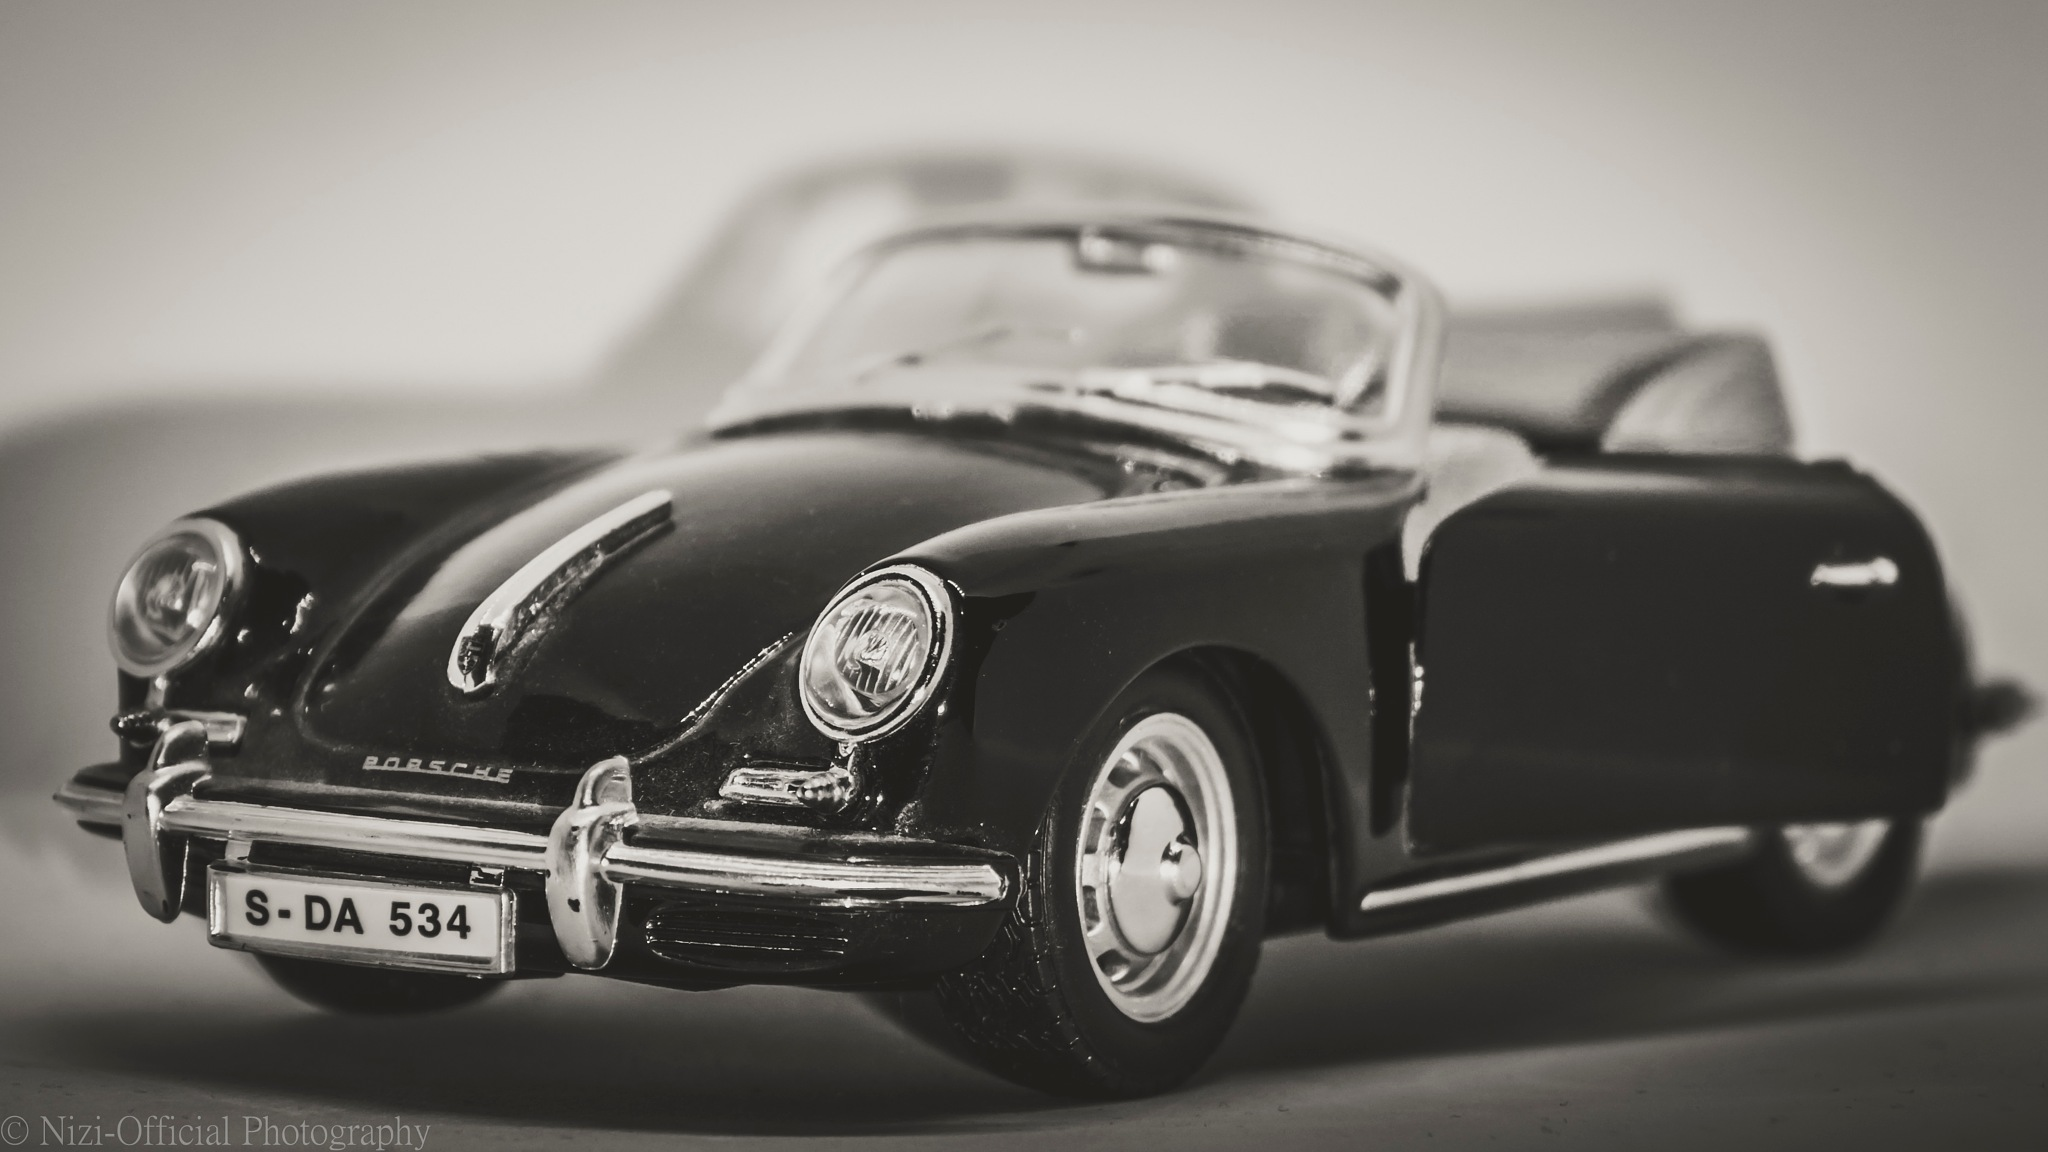 PORSCHE > 356 > b > Cabriolet by N-O Photography